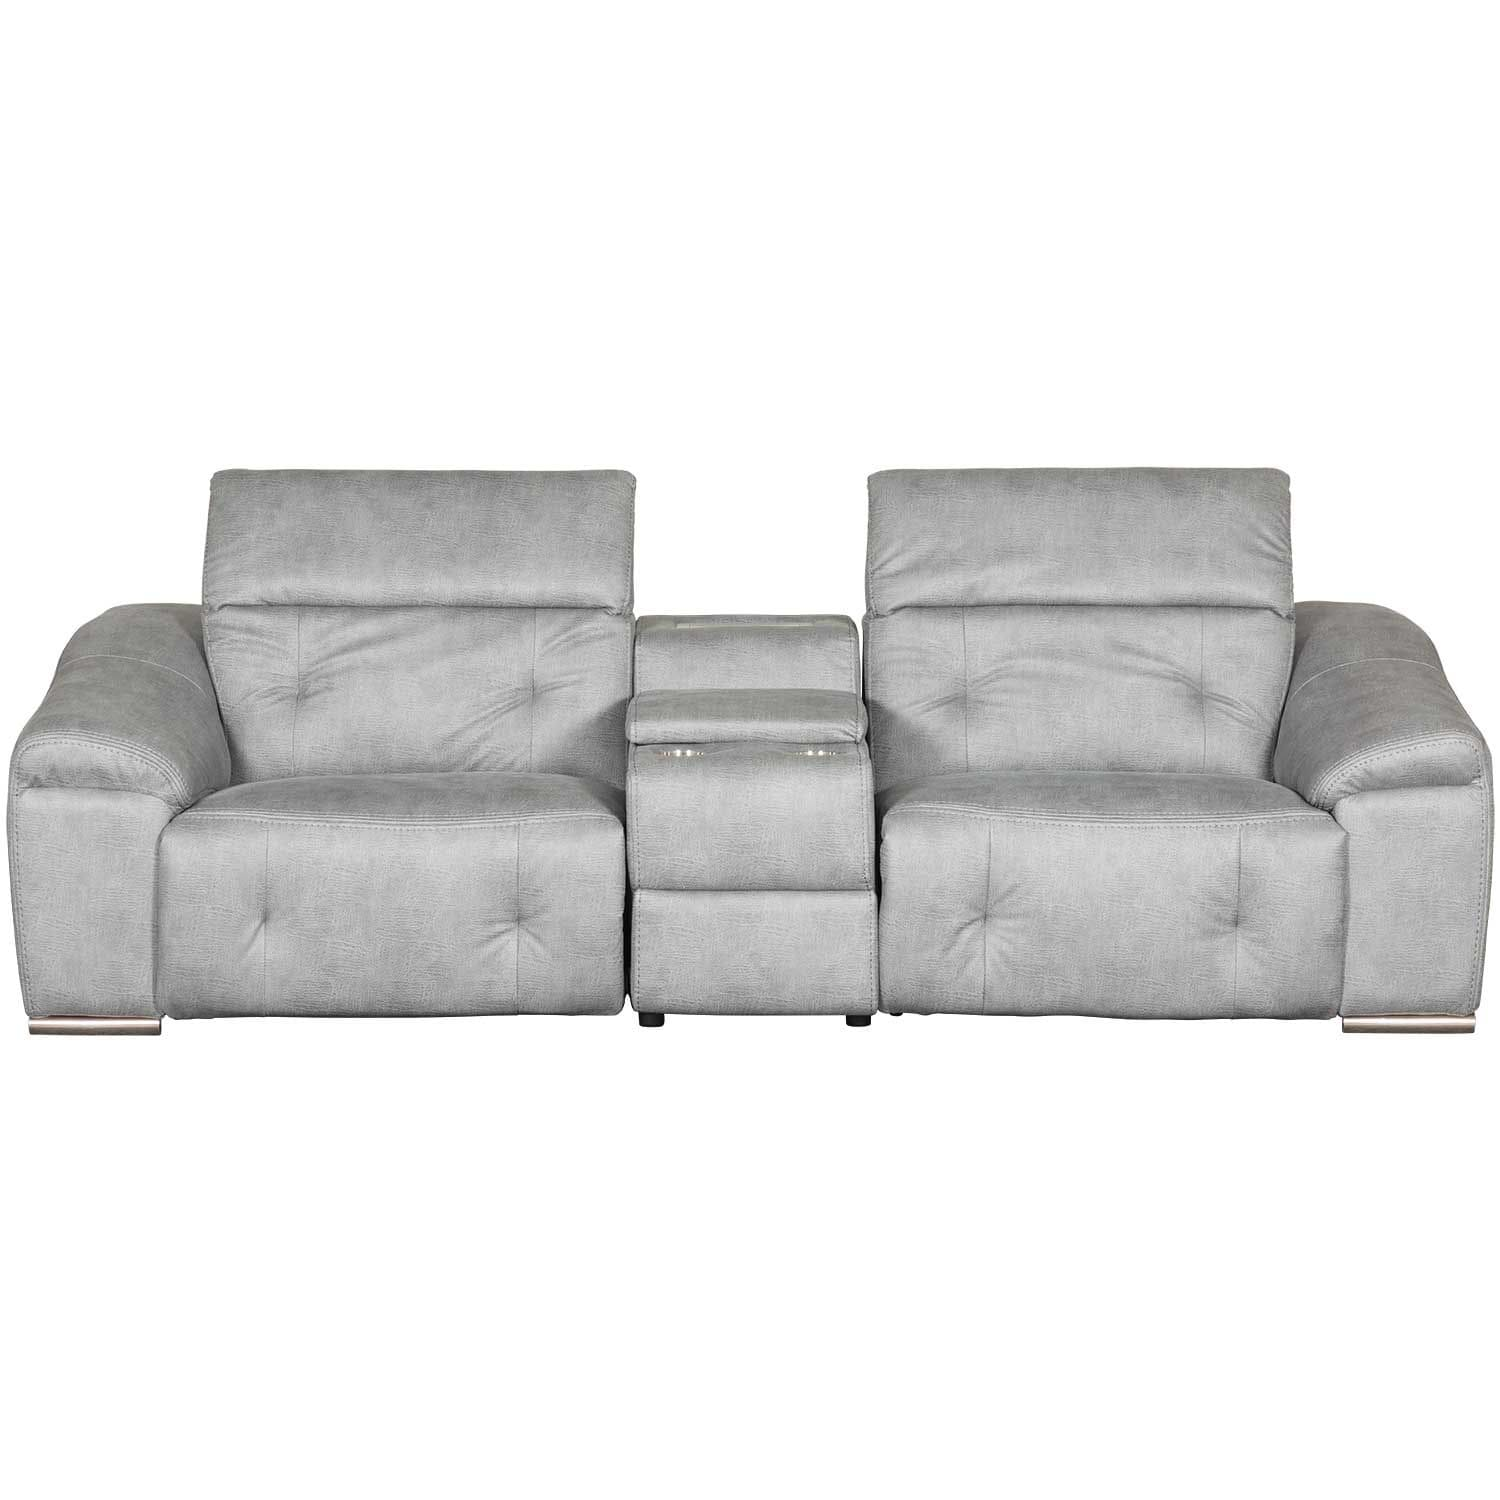 Bronx 3 Piece Power Reclining Sectional